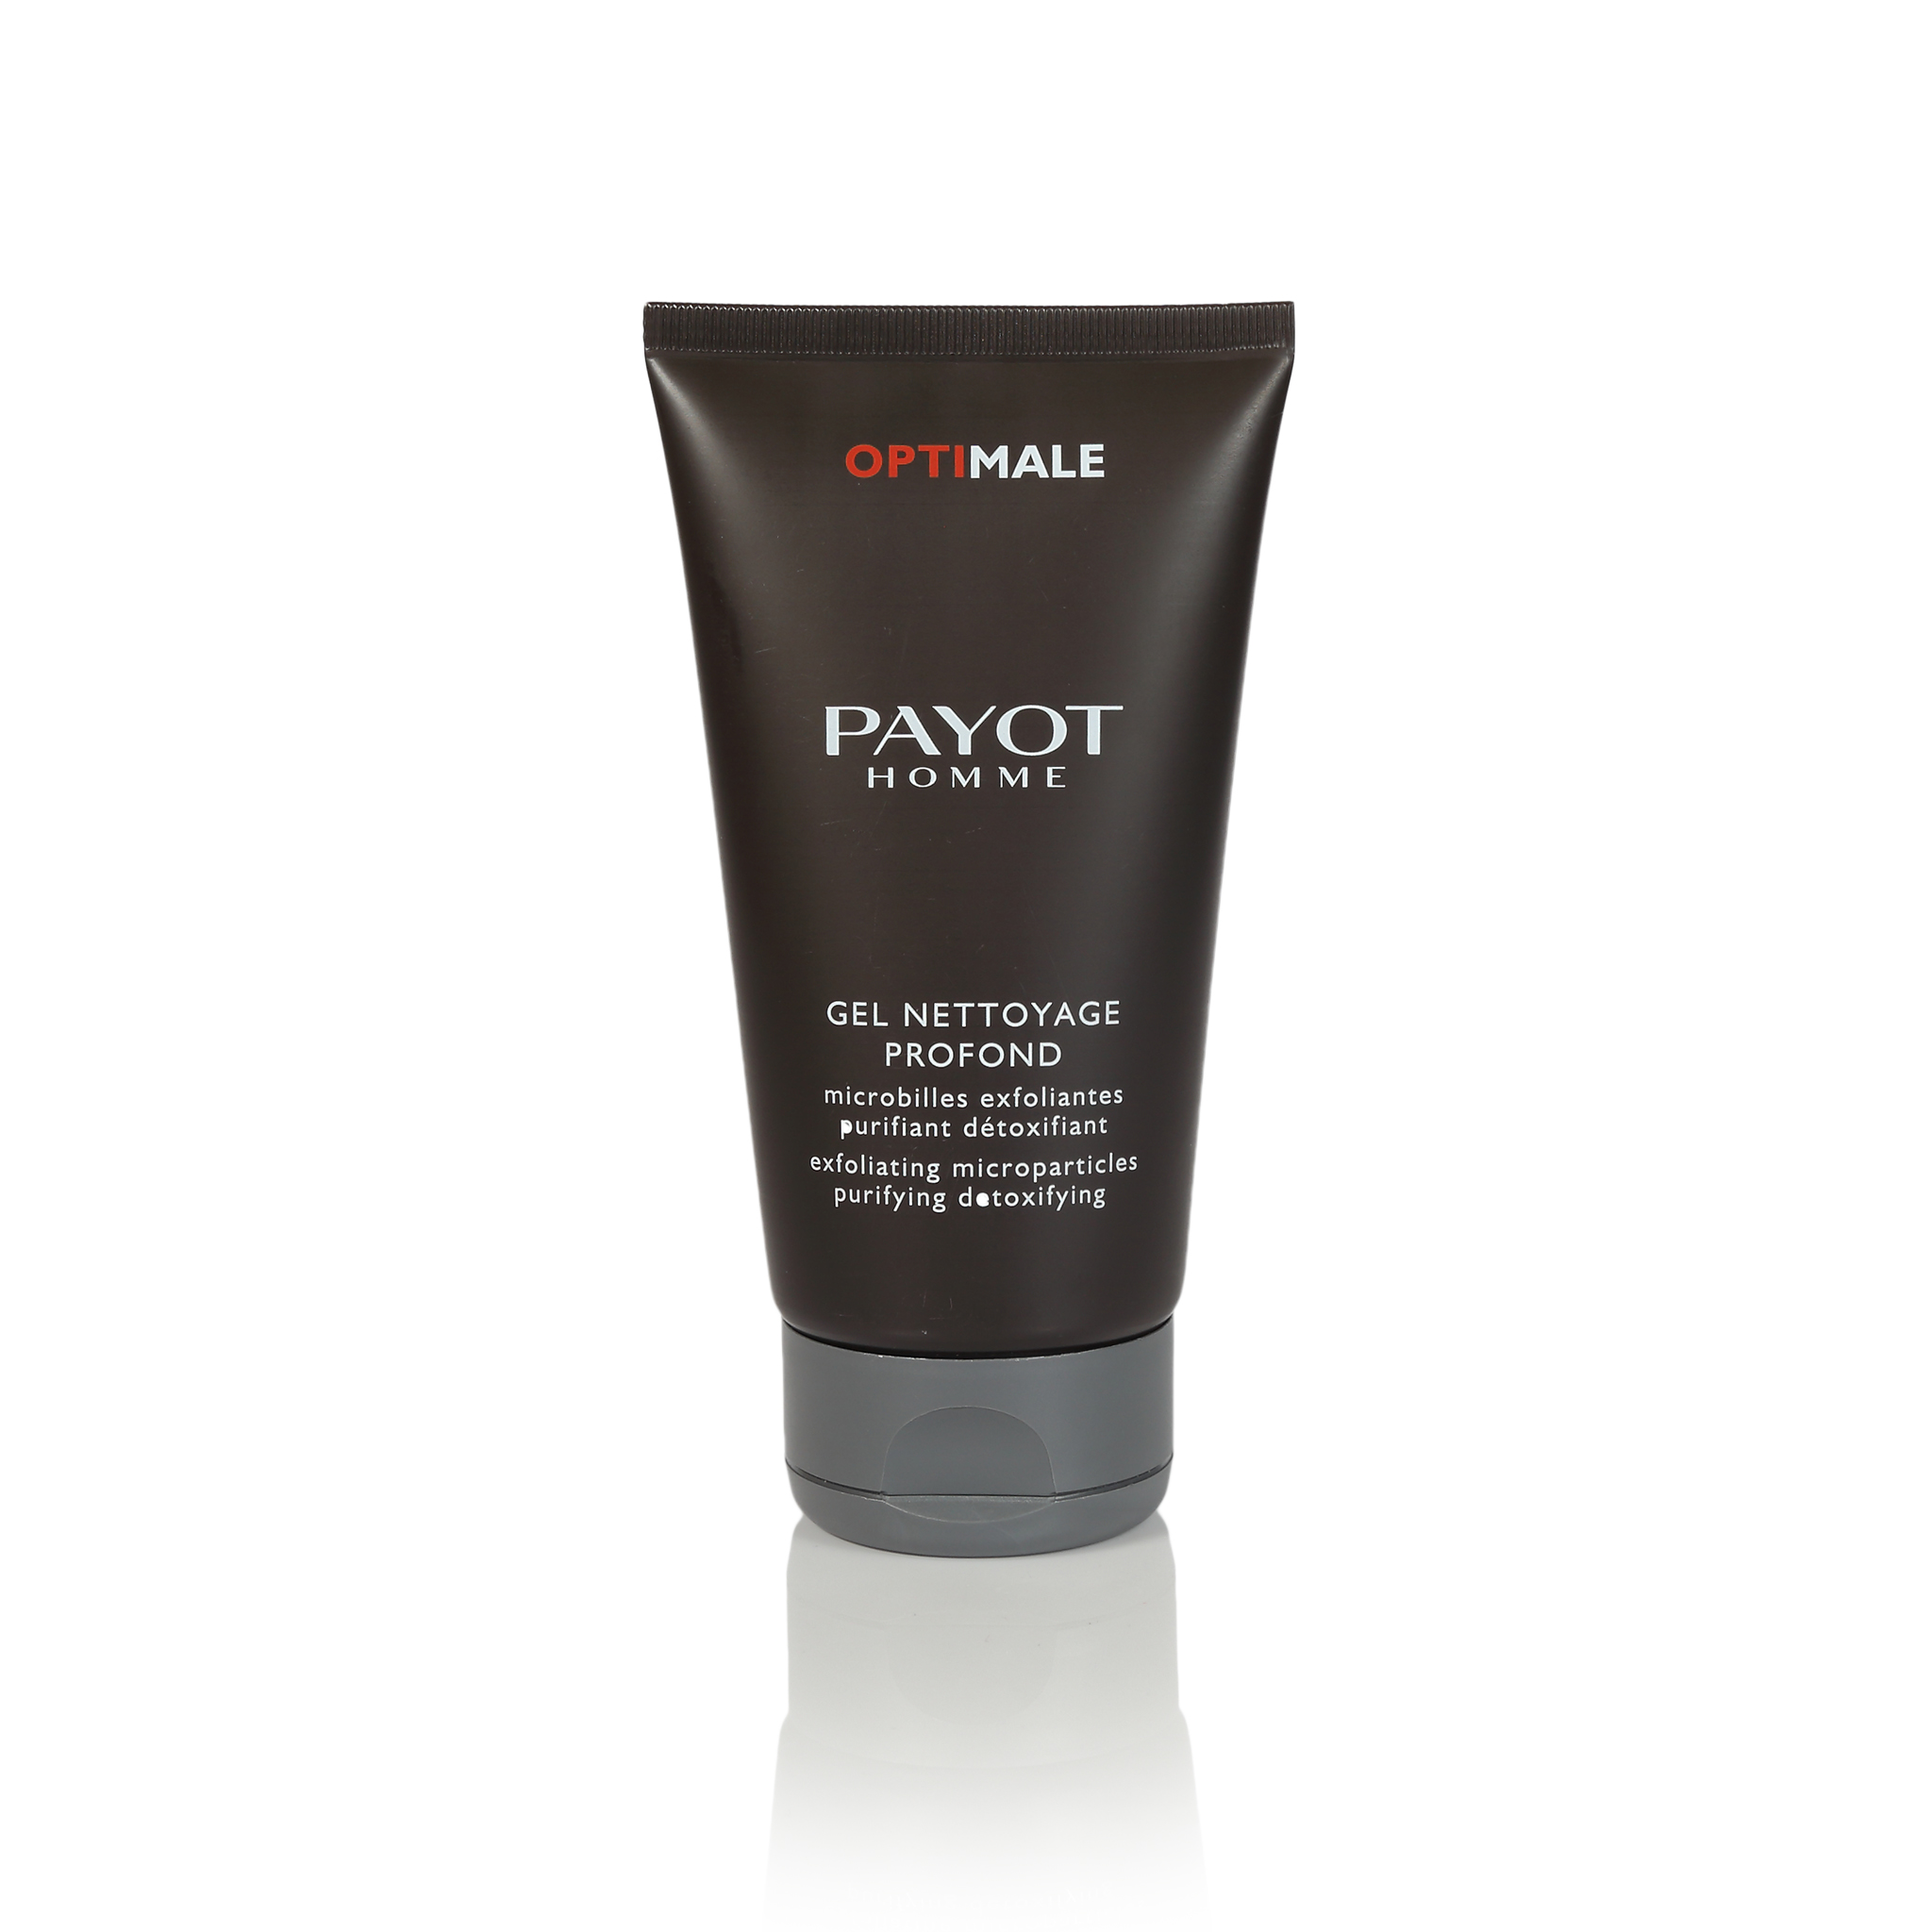 Homme Optimale Gel Nettoyage Profond Exfoliating Microparticles